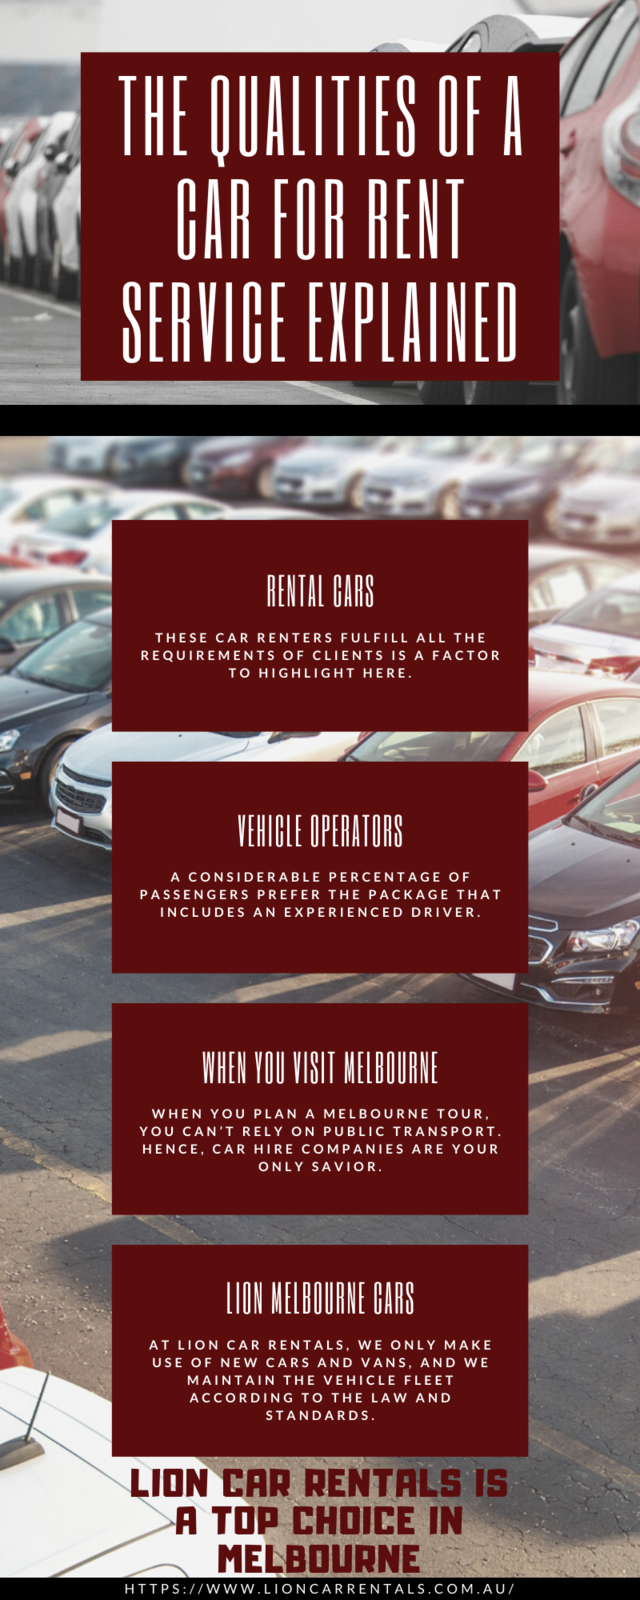 The qualities of a car for rent service explained (1)